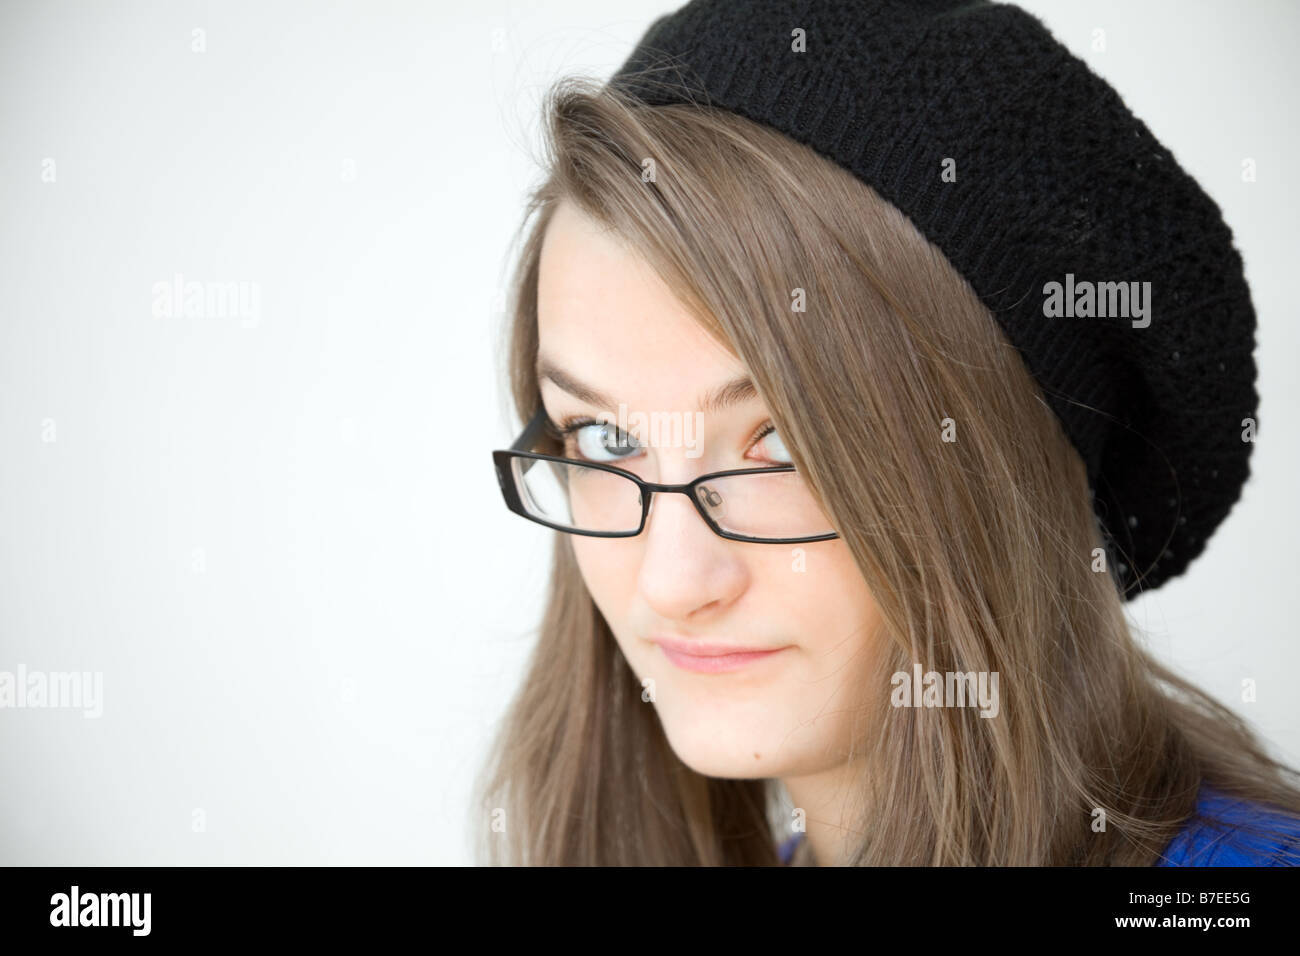 Clever teenage teen girl wearing a hat and giving a sideways look over her glasses, UK - Stock Image